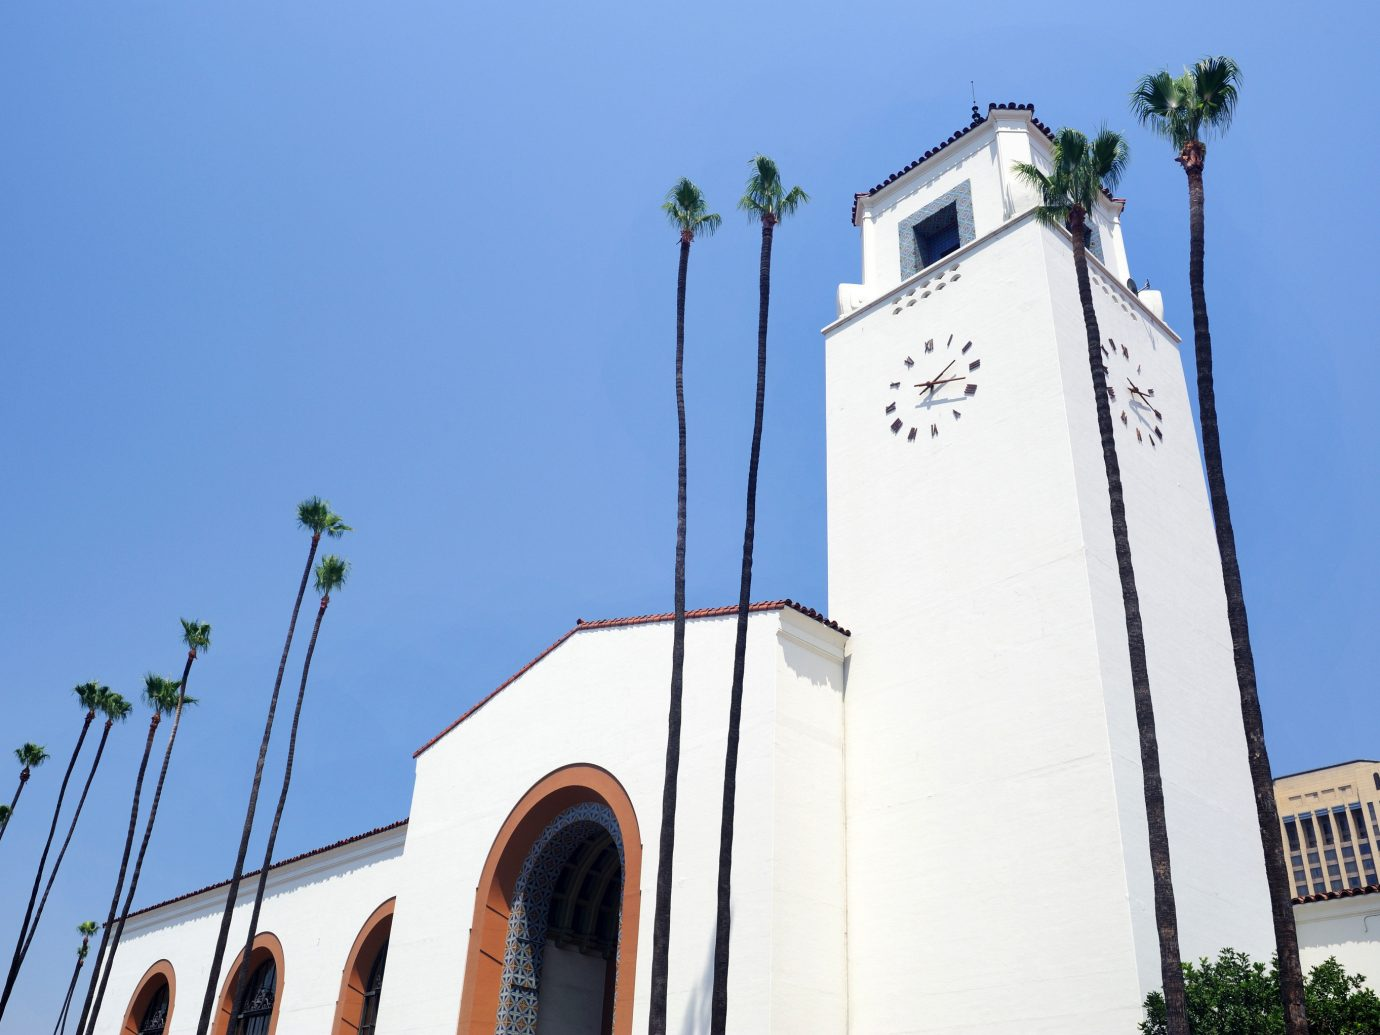 Offbeat sky outdoor building landmark Church place of worship steeple tall tower roof